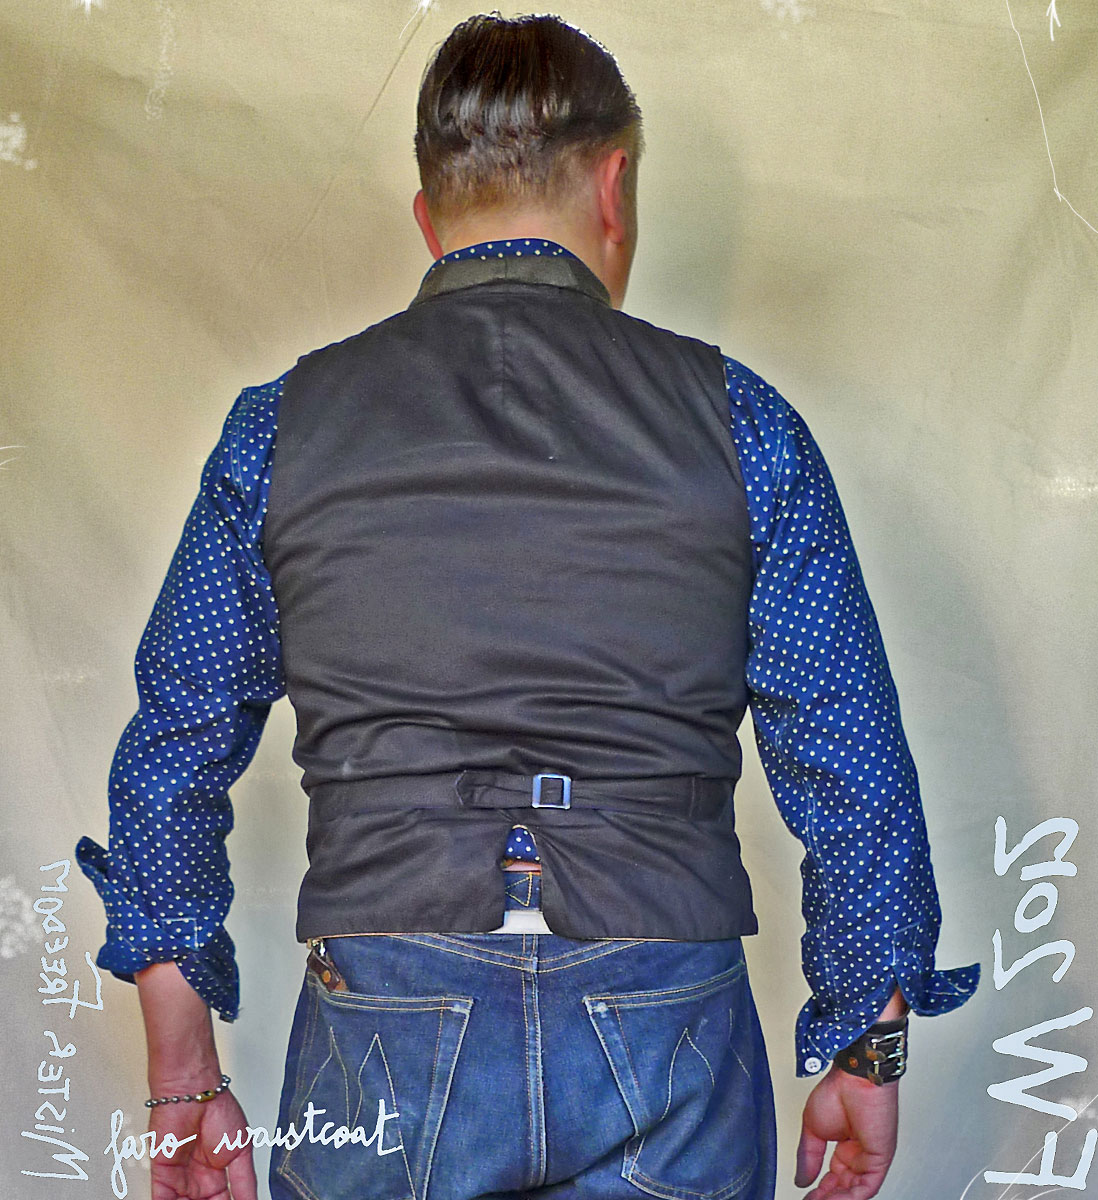 I look like a 300 lb gorilla from behind. I had not yet noticed that from the front, Mister Freedom® ©2012